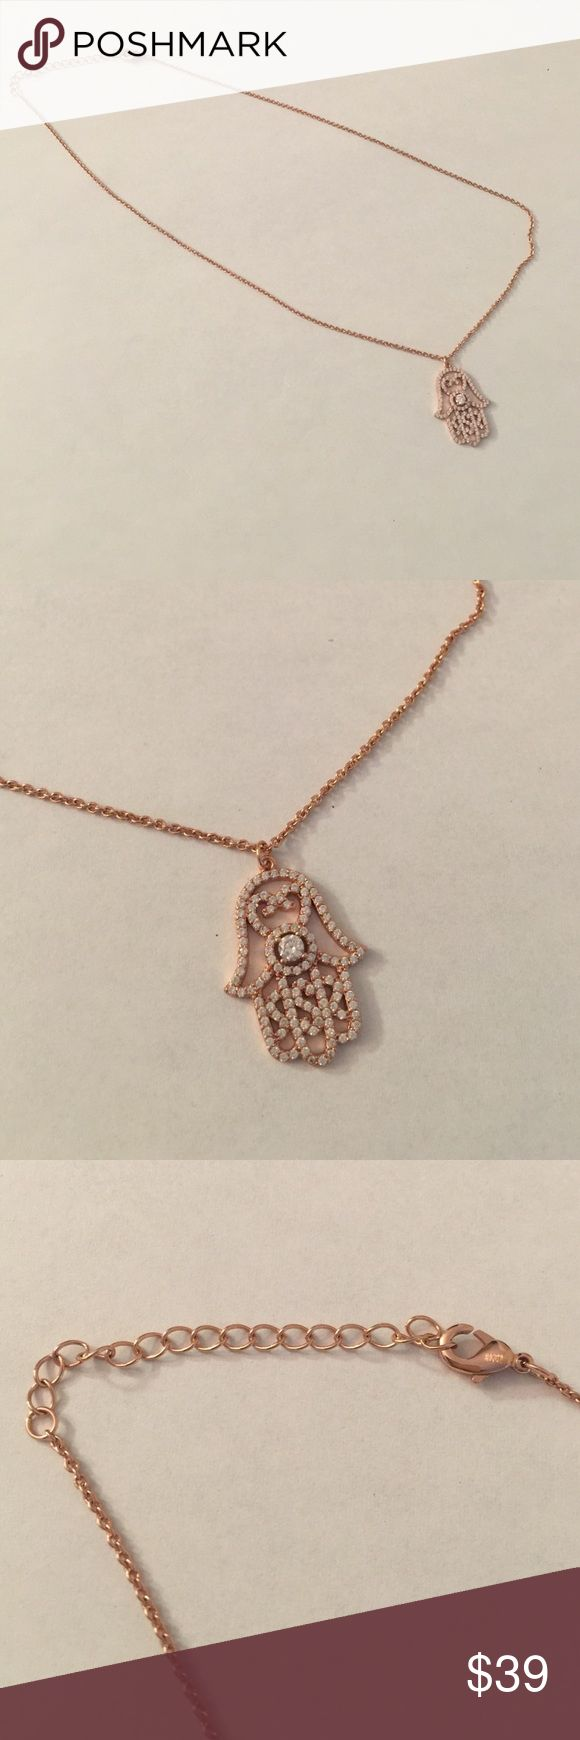 Rosegold and rhinestone Hamsa necklace Beautiful and delicate rose gold like Hamsa necklace adorned with small and detailed rhinestones, super pretty Jewelry Necklaces